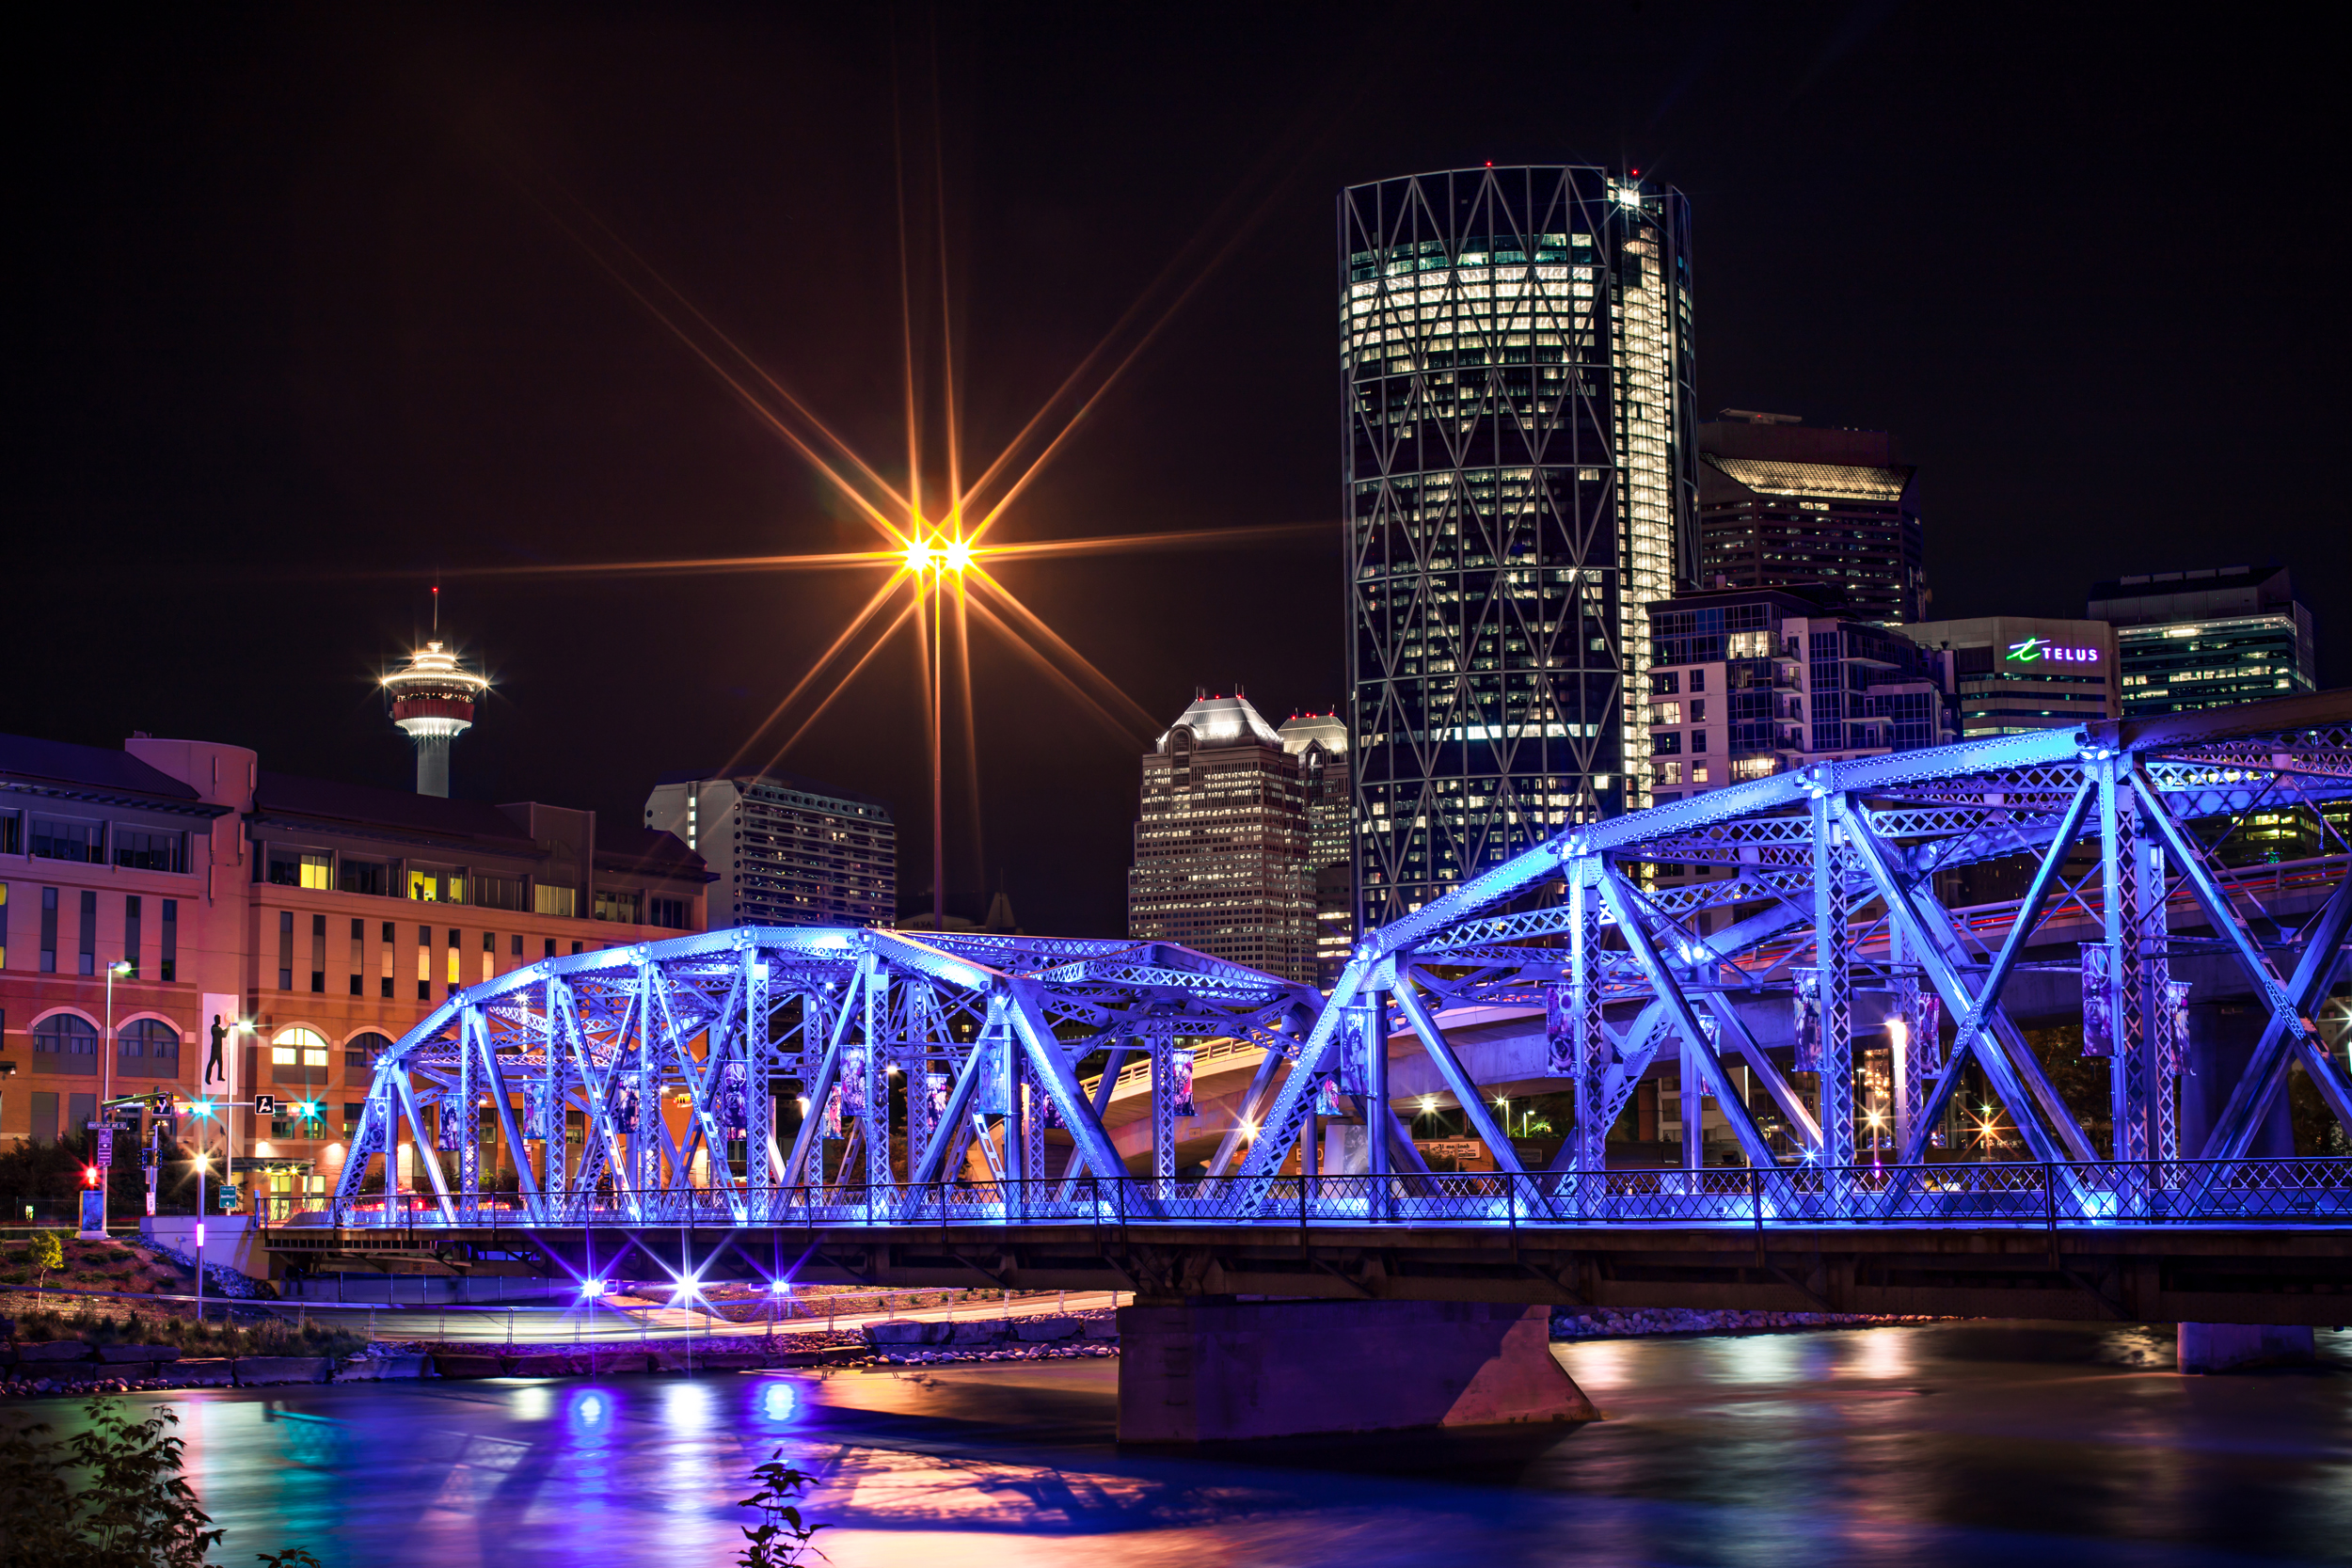 Lavigne Bridge in Calgary